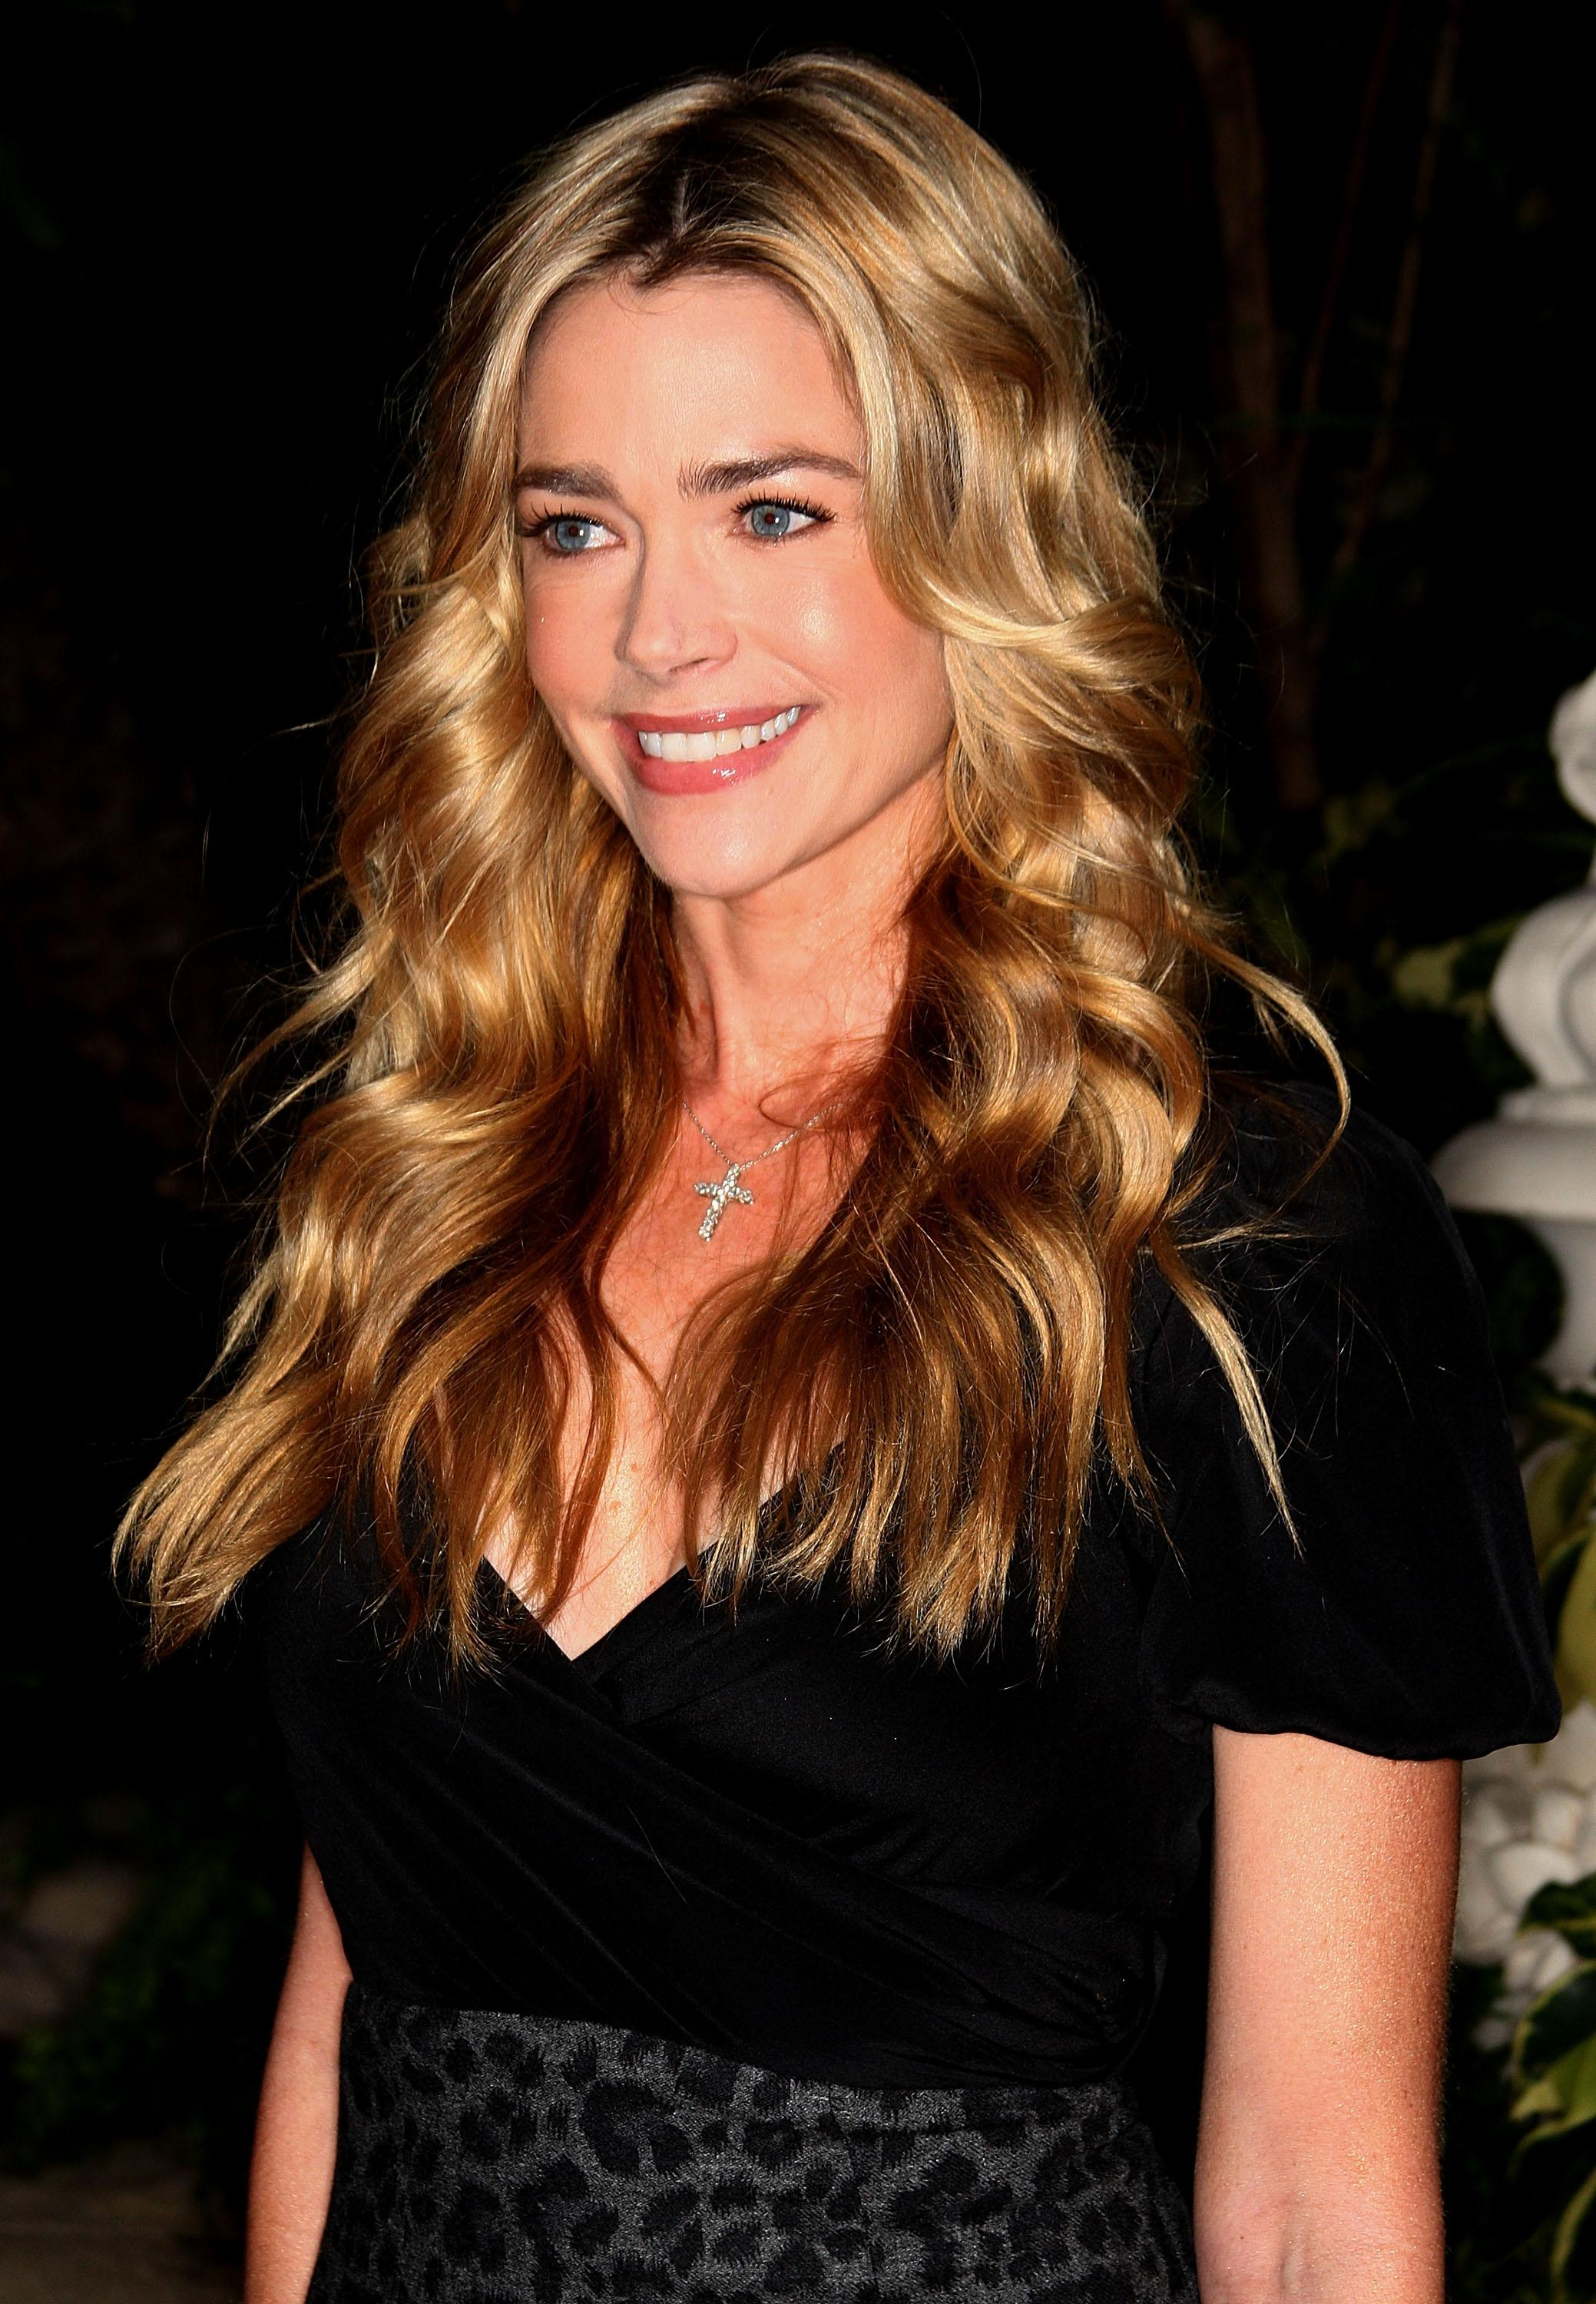 Denise richards foto desnuda